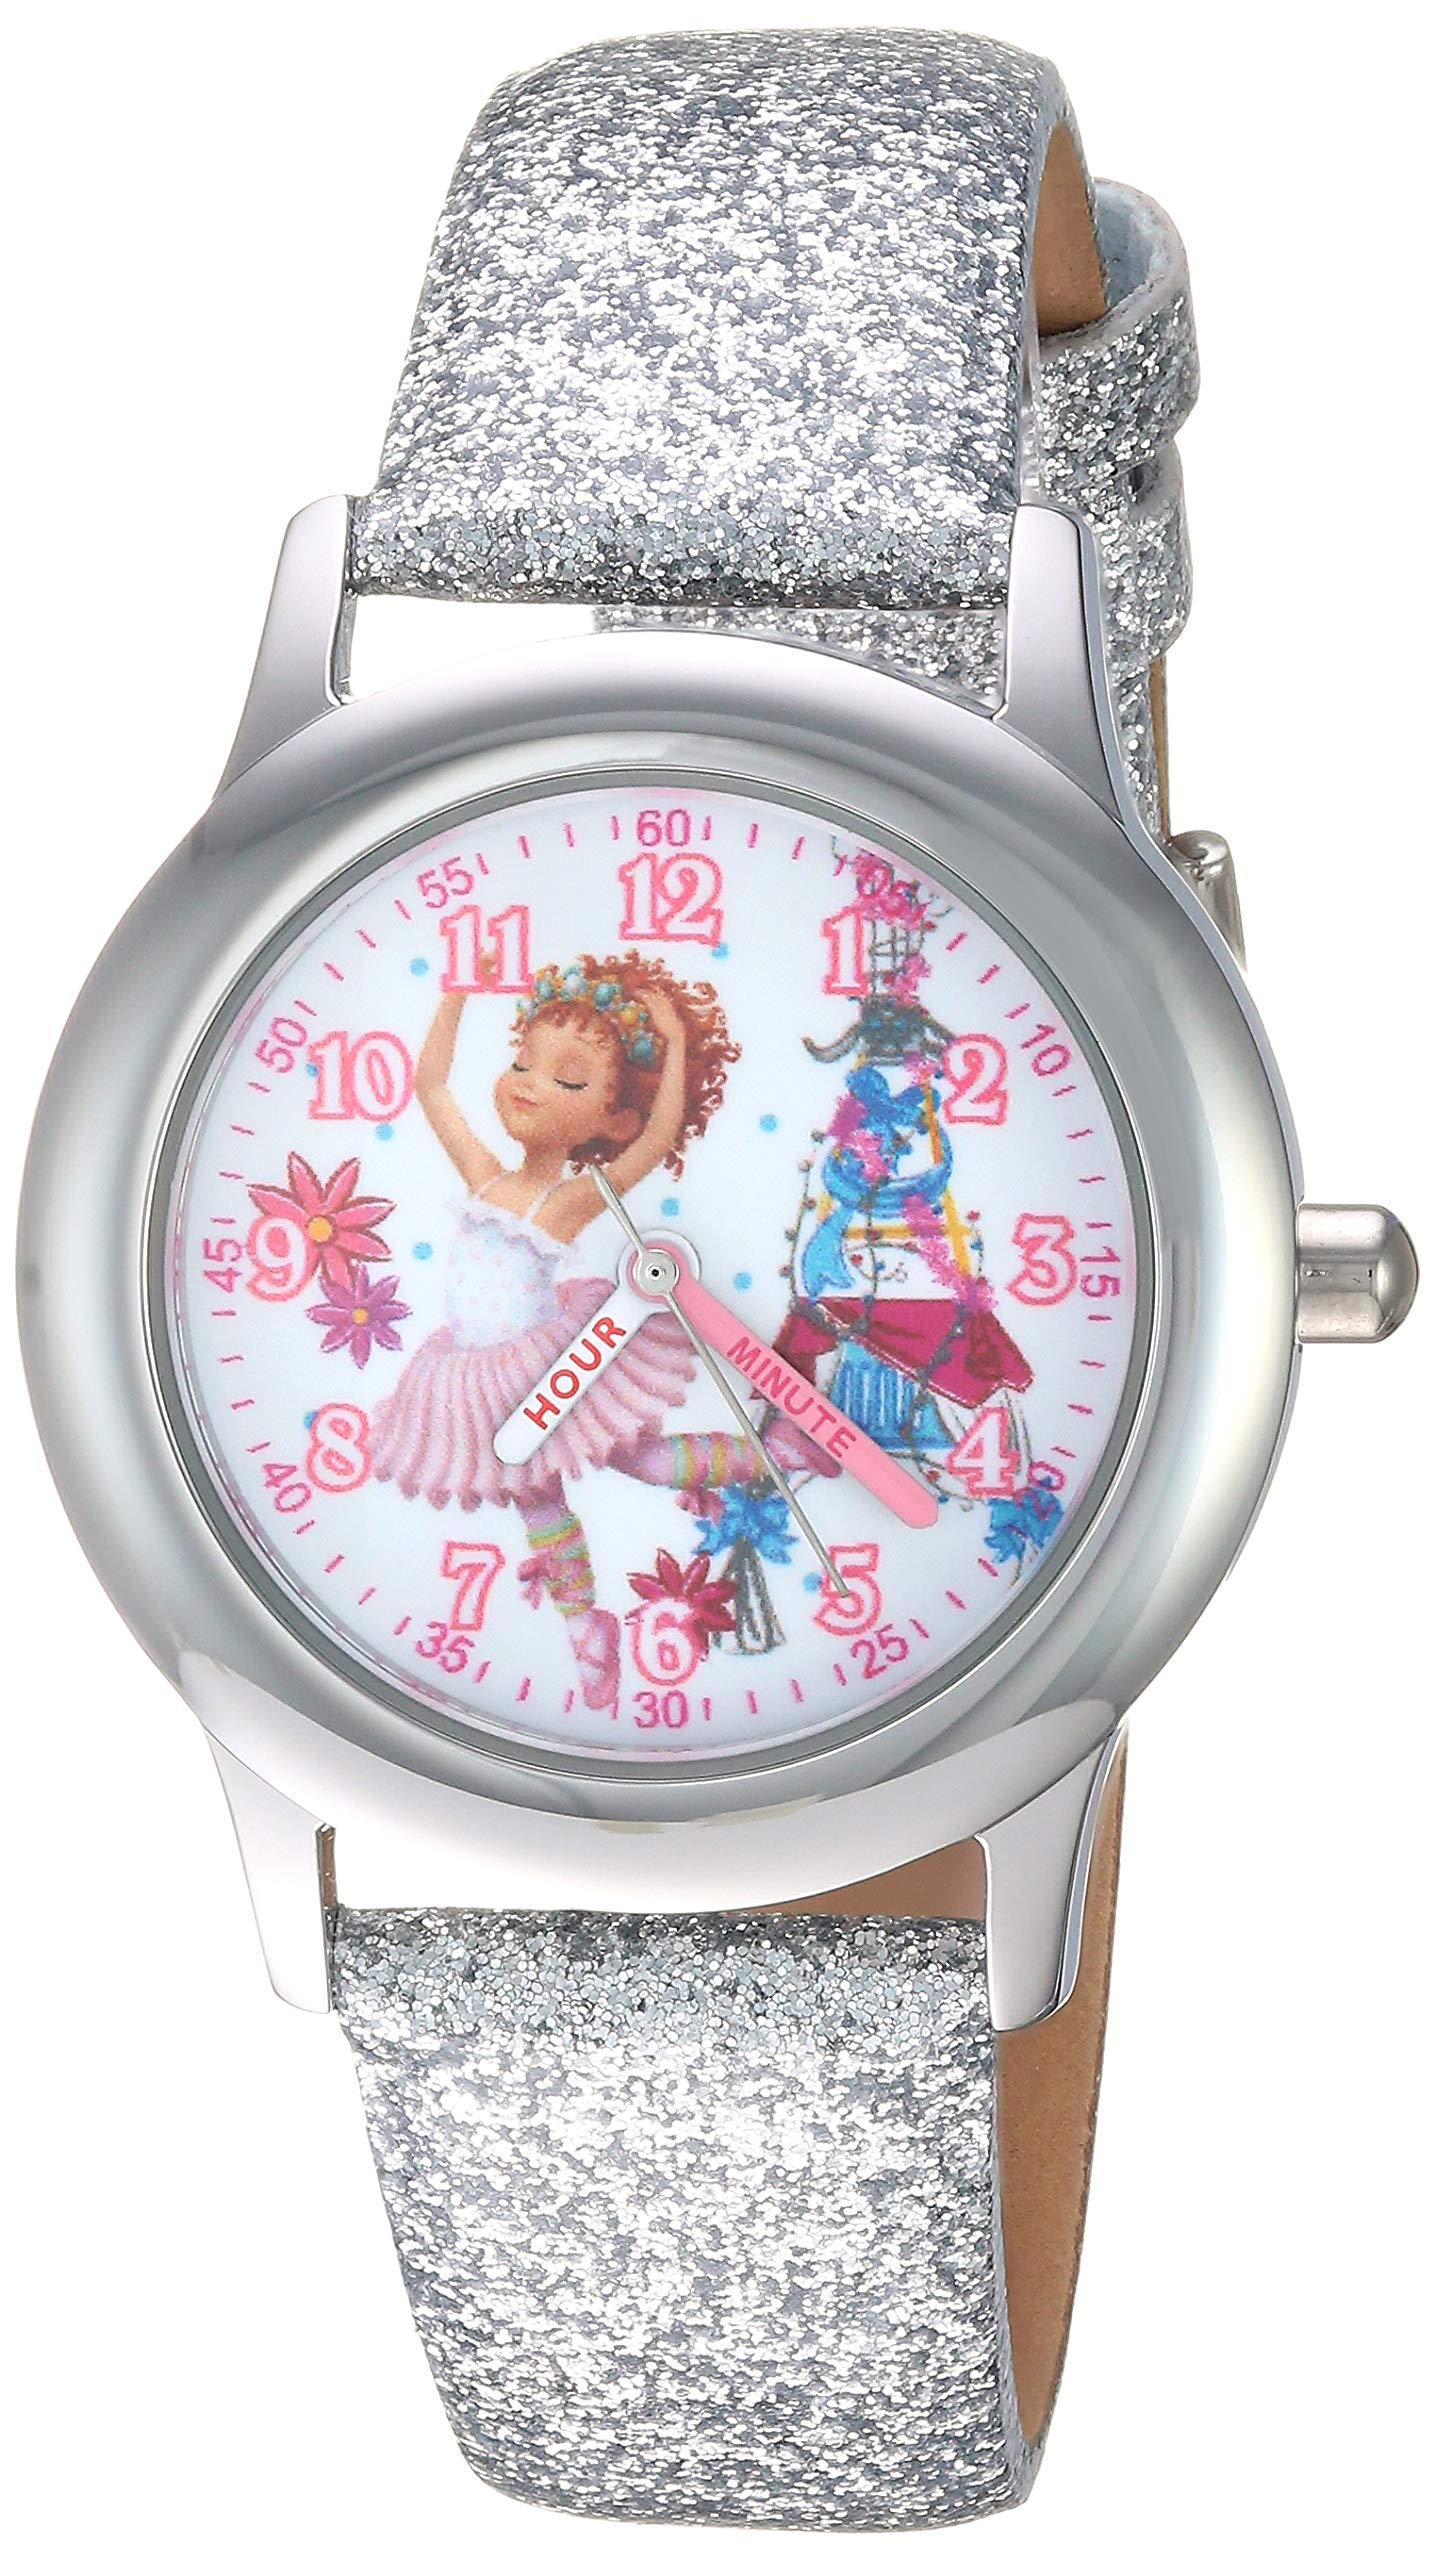 Disney Girls Fancy Nancy Stainless Steel Analog-Quartz Watch with Leather Strap, Silver, 13.5 (Model: WDS000599) by Disney